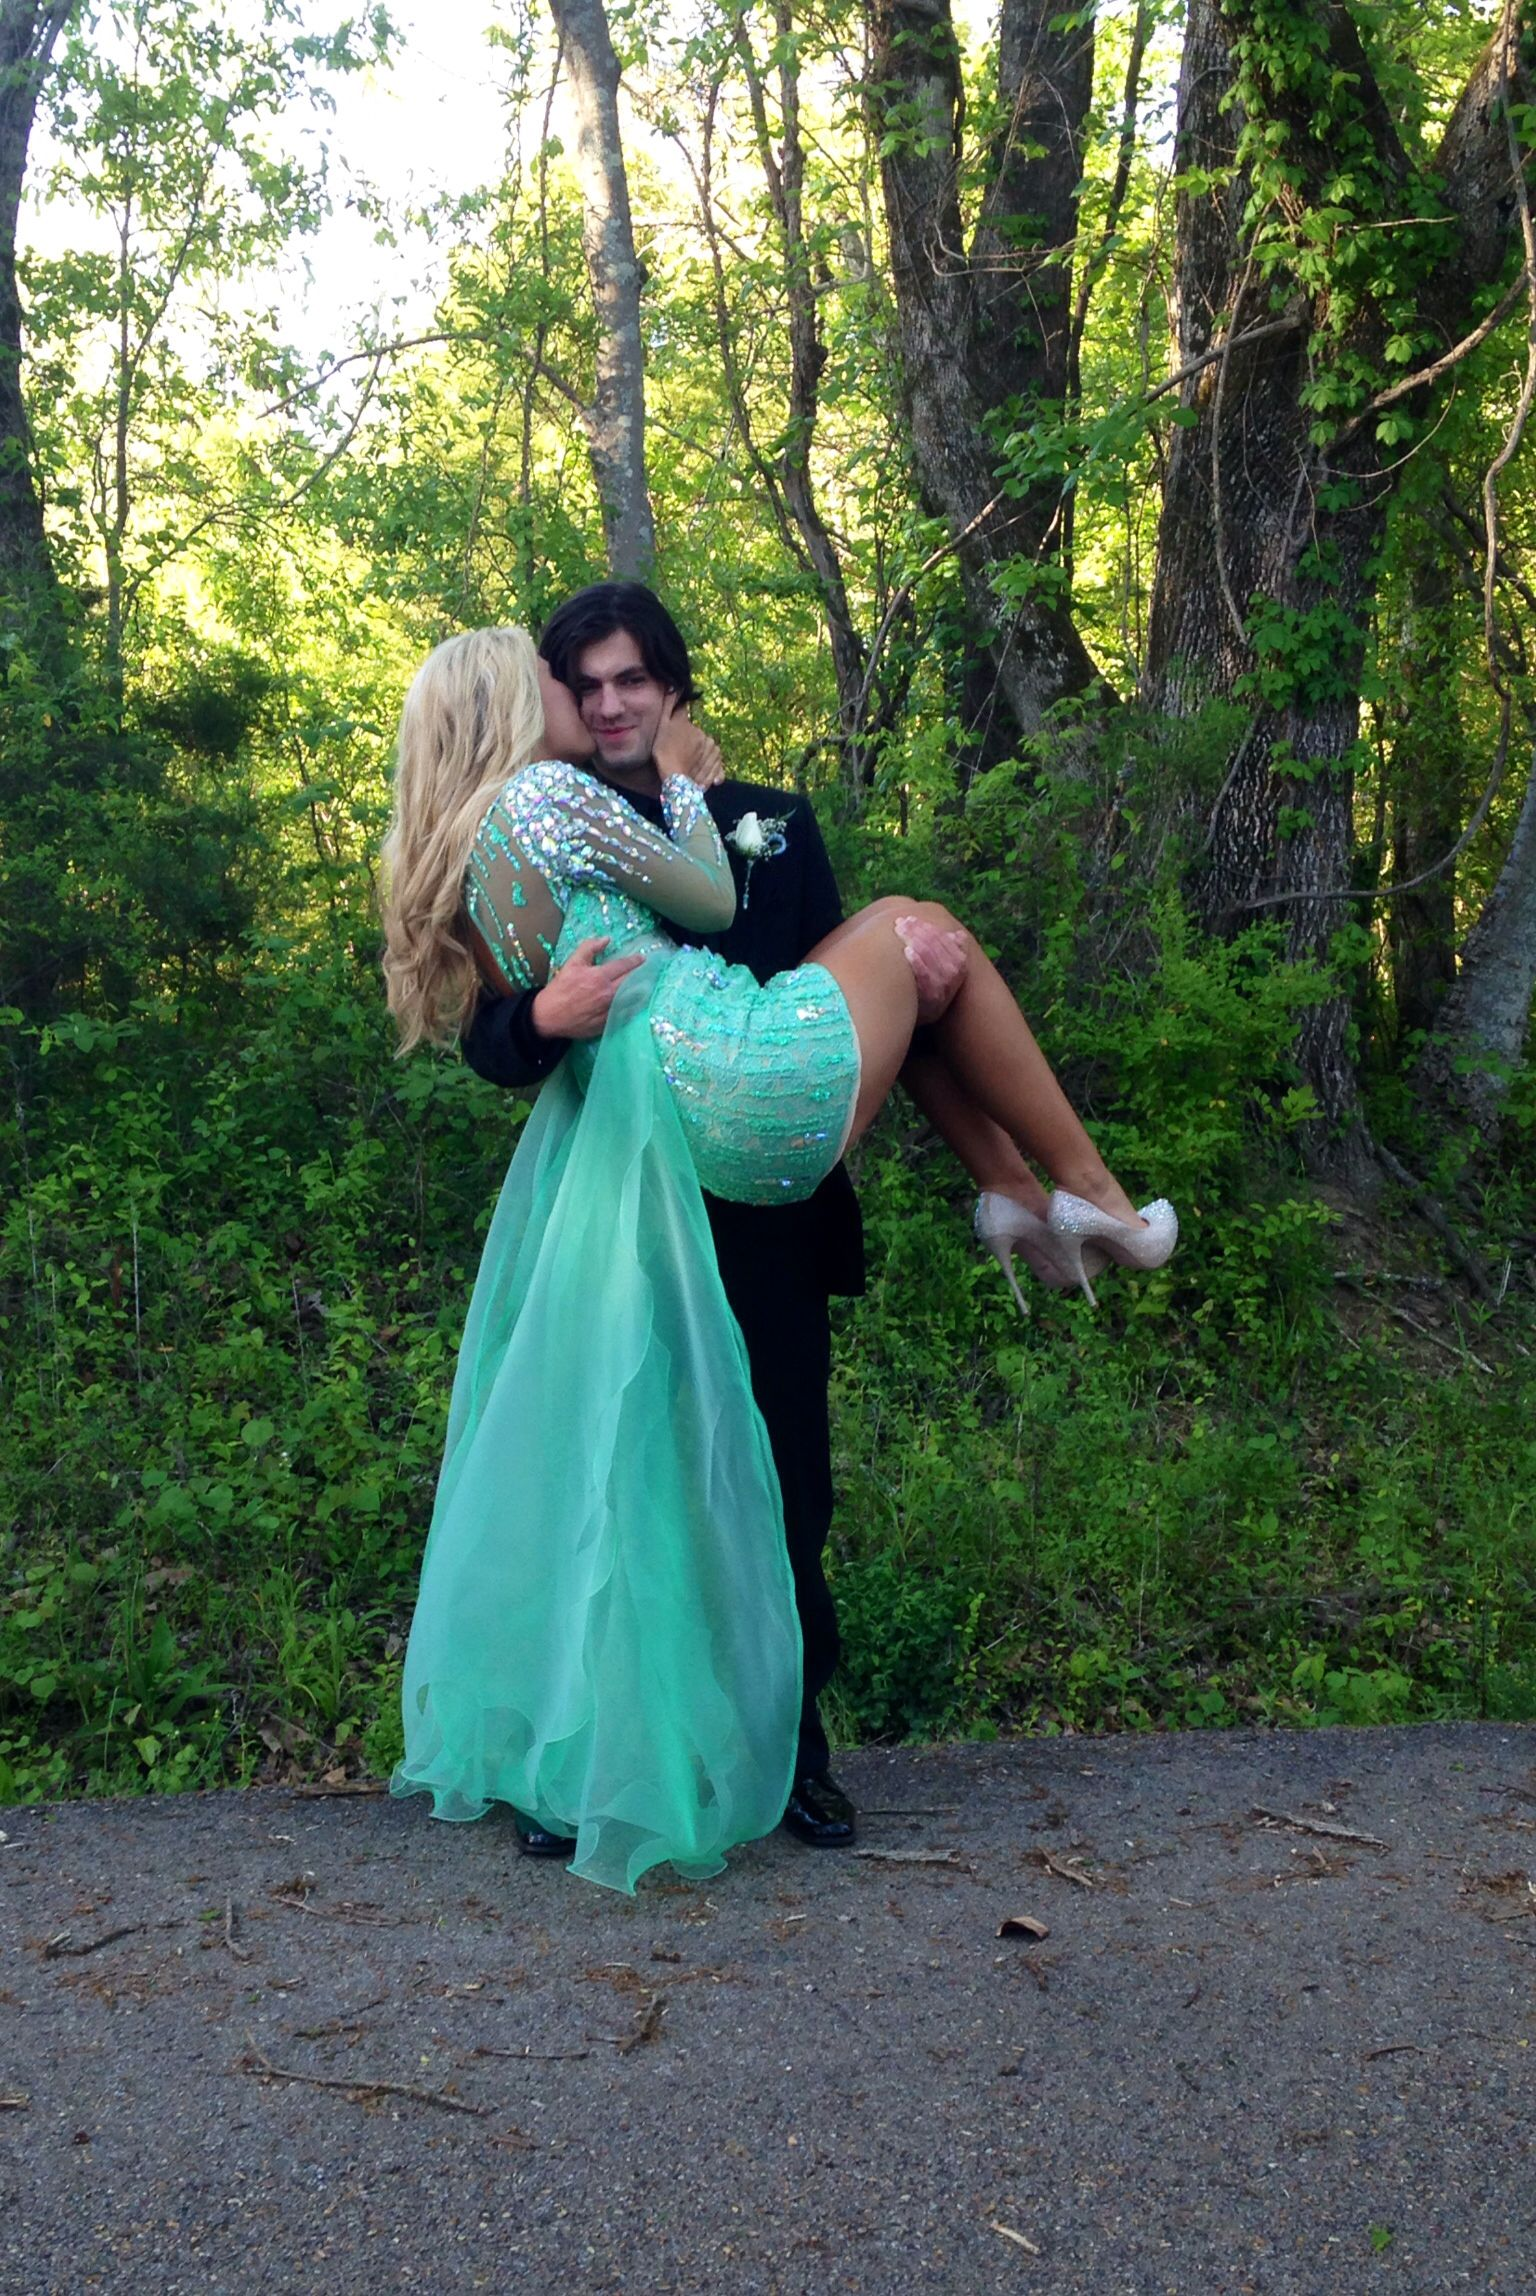 how to dance at prom without grinding